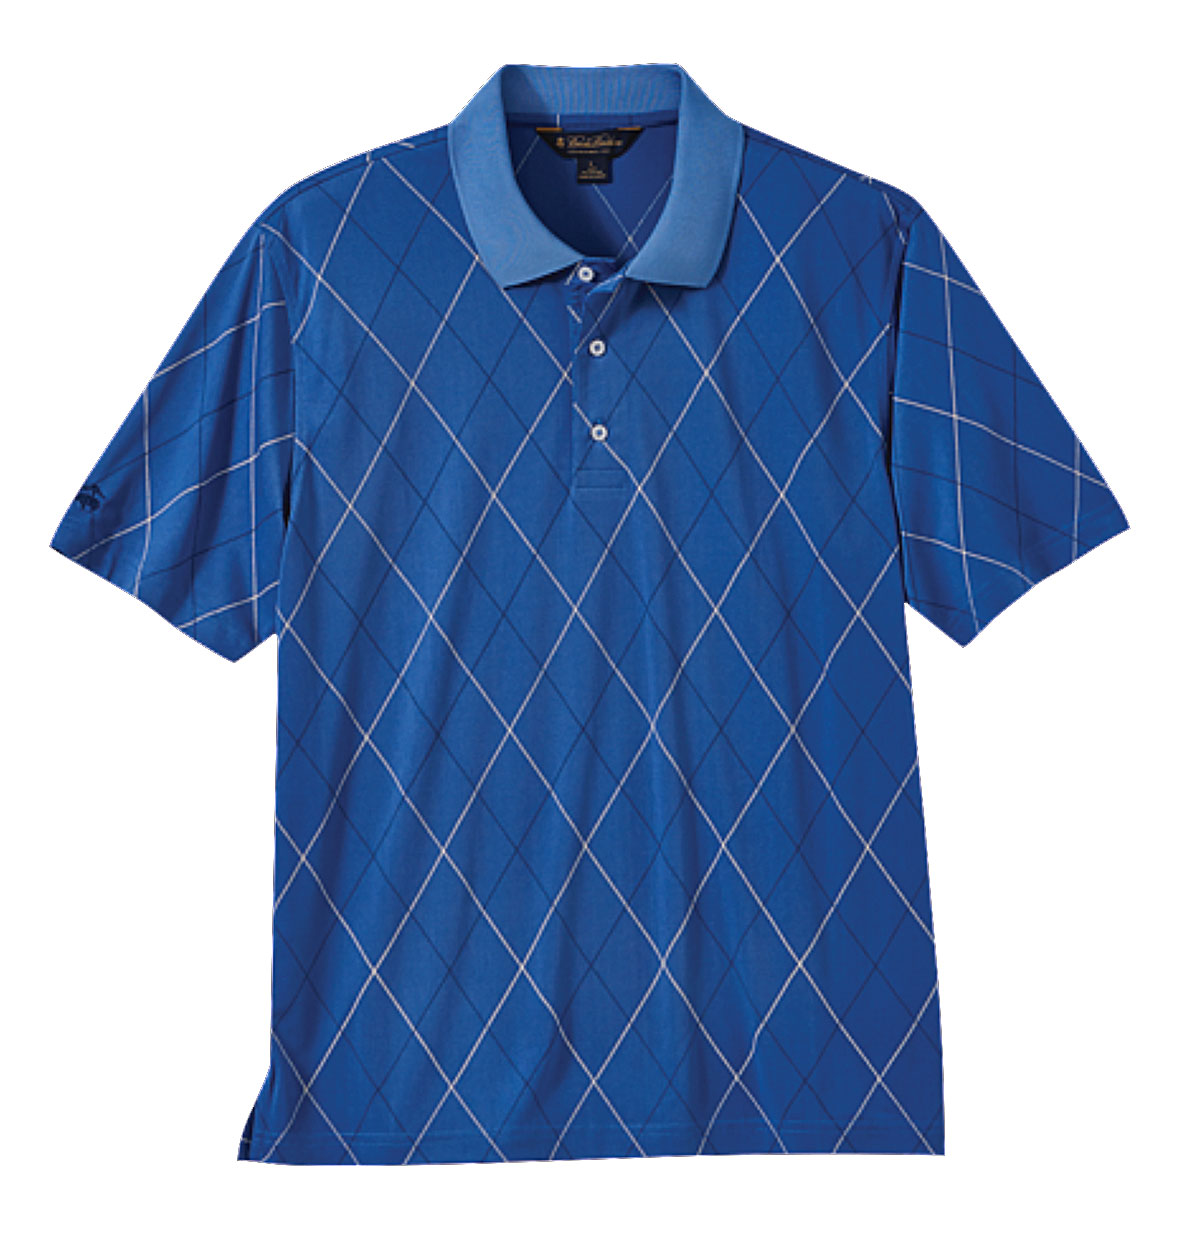 Brooks Brothers Mens Performance Printed Argyle Pique Polo